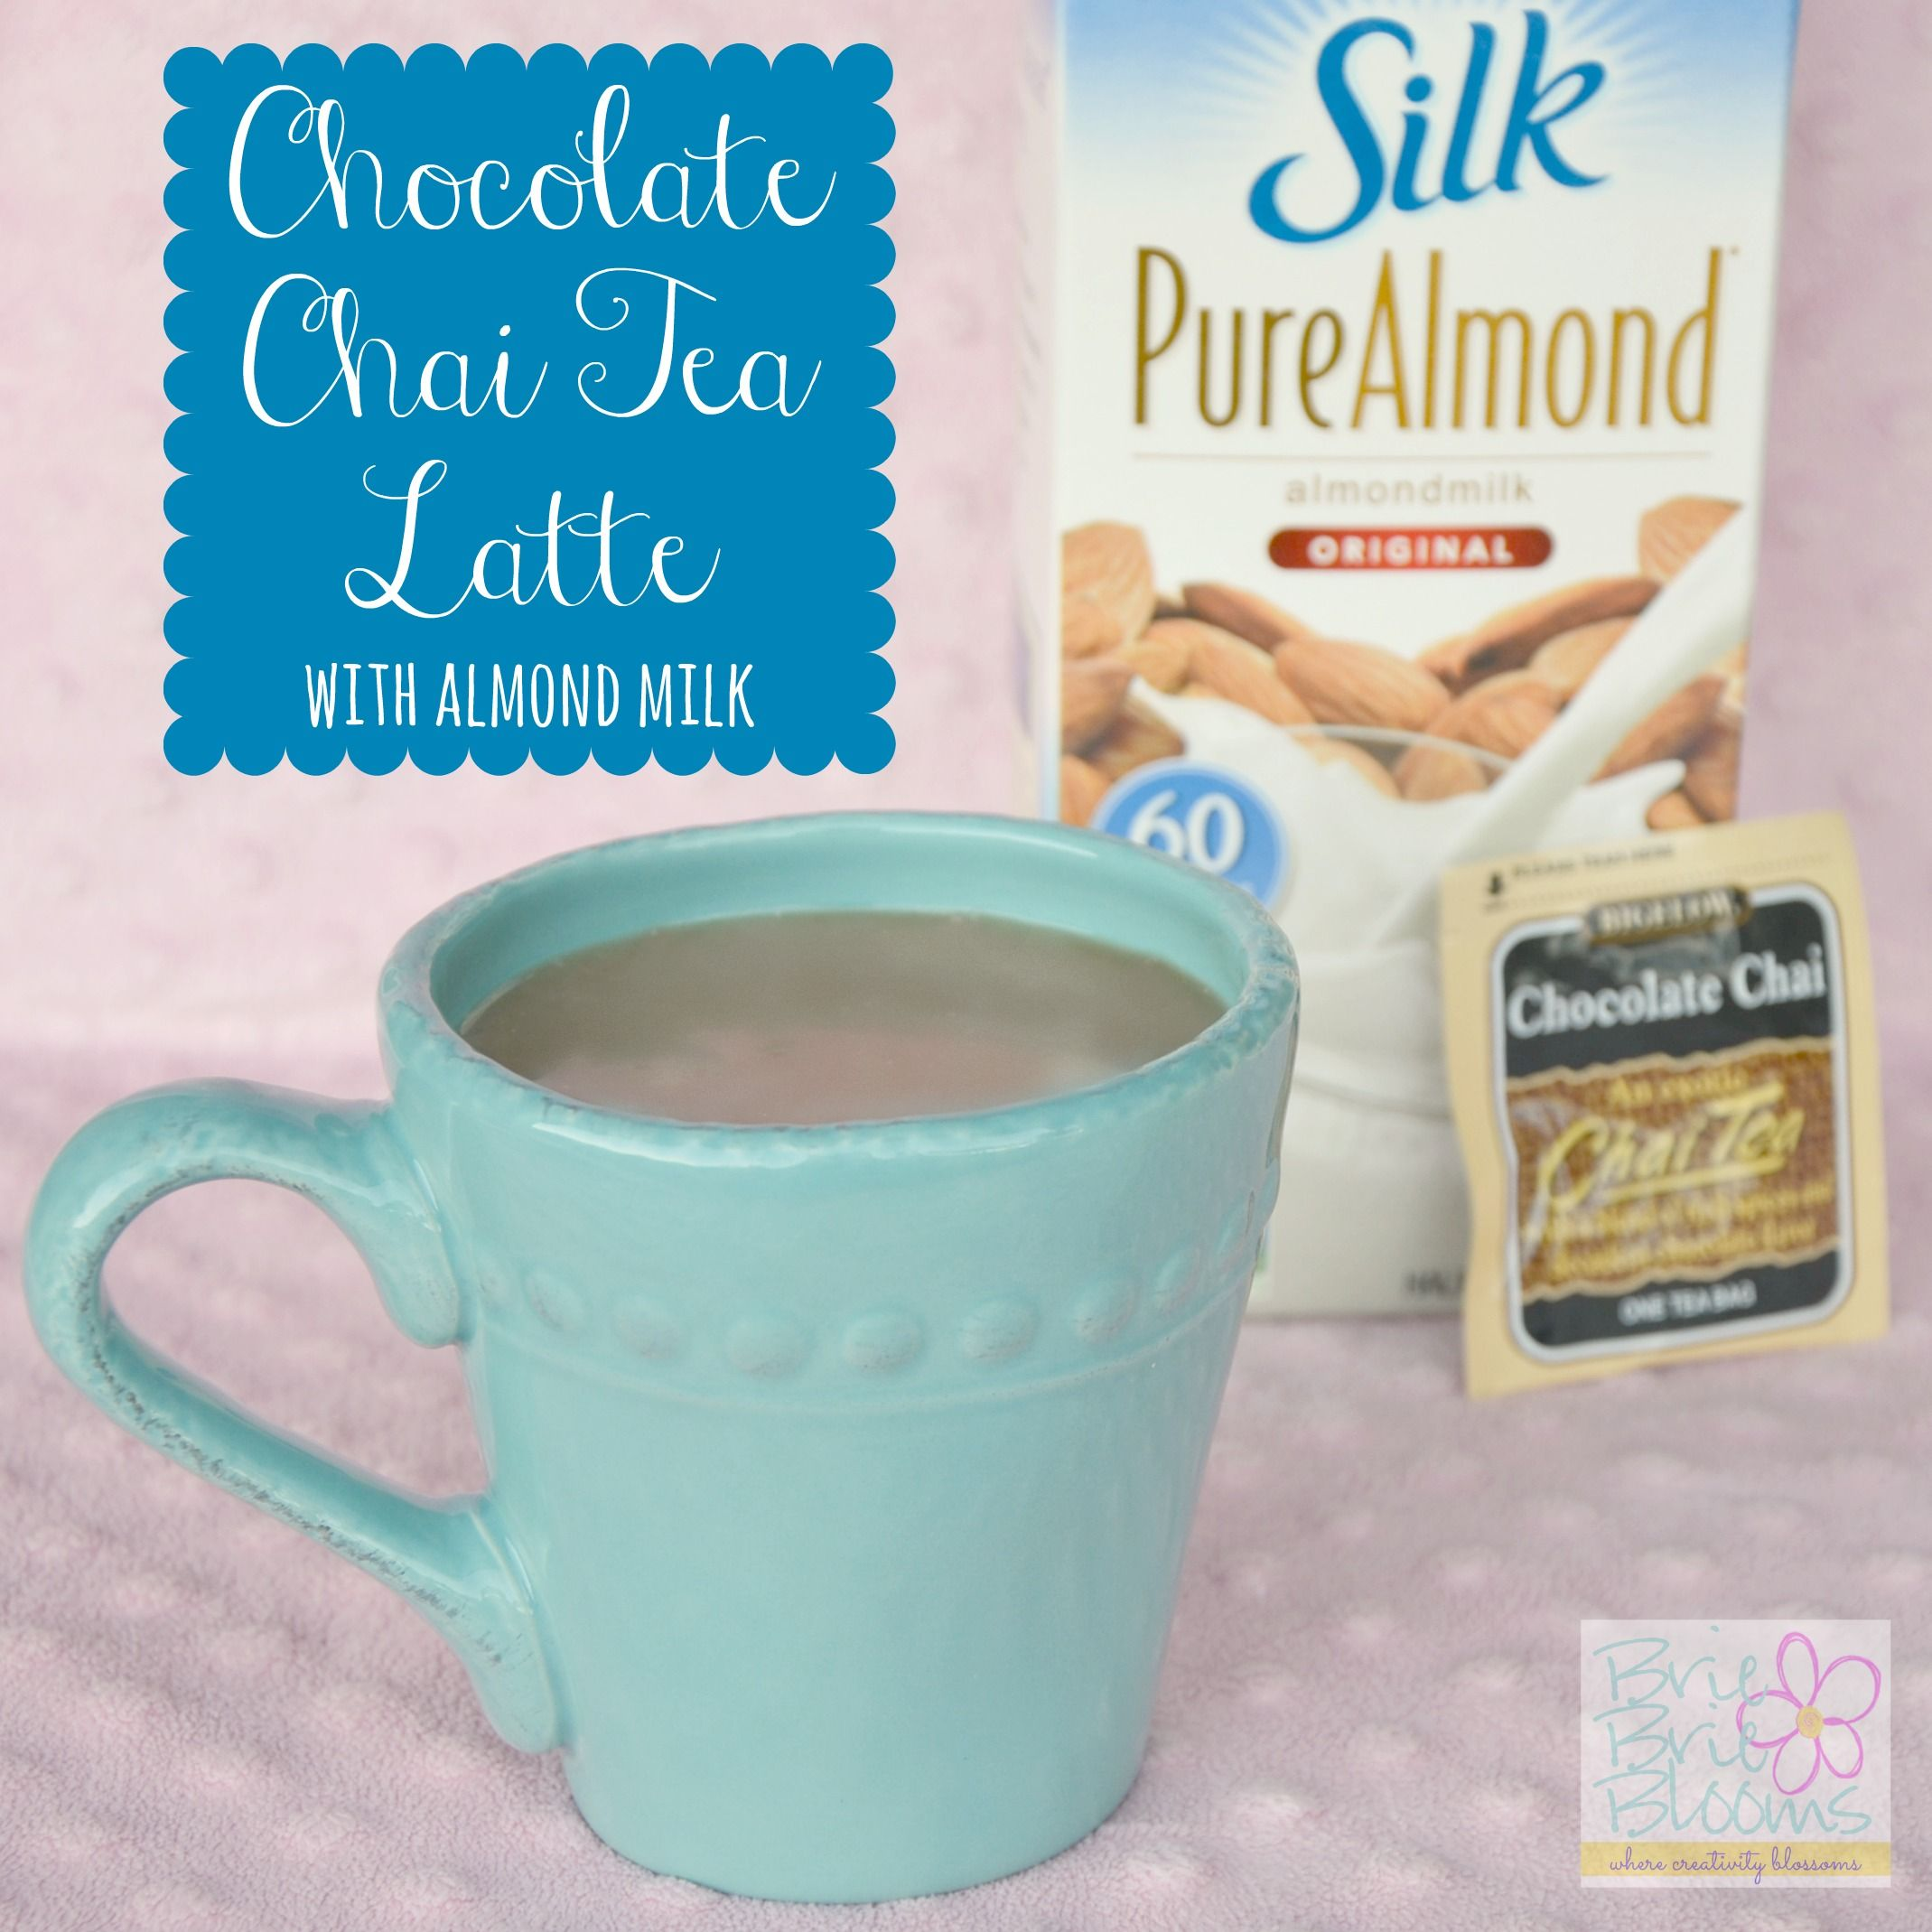 Chocolate Chai Tea Latte with Almond Milk Recipe Drink